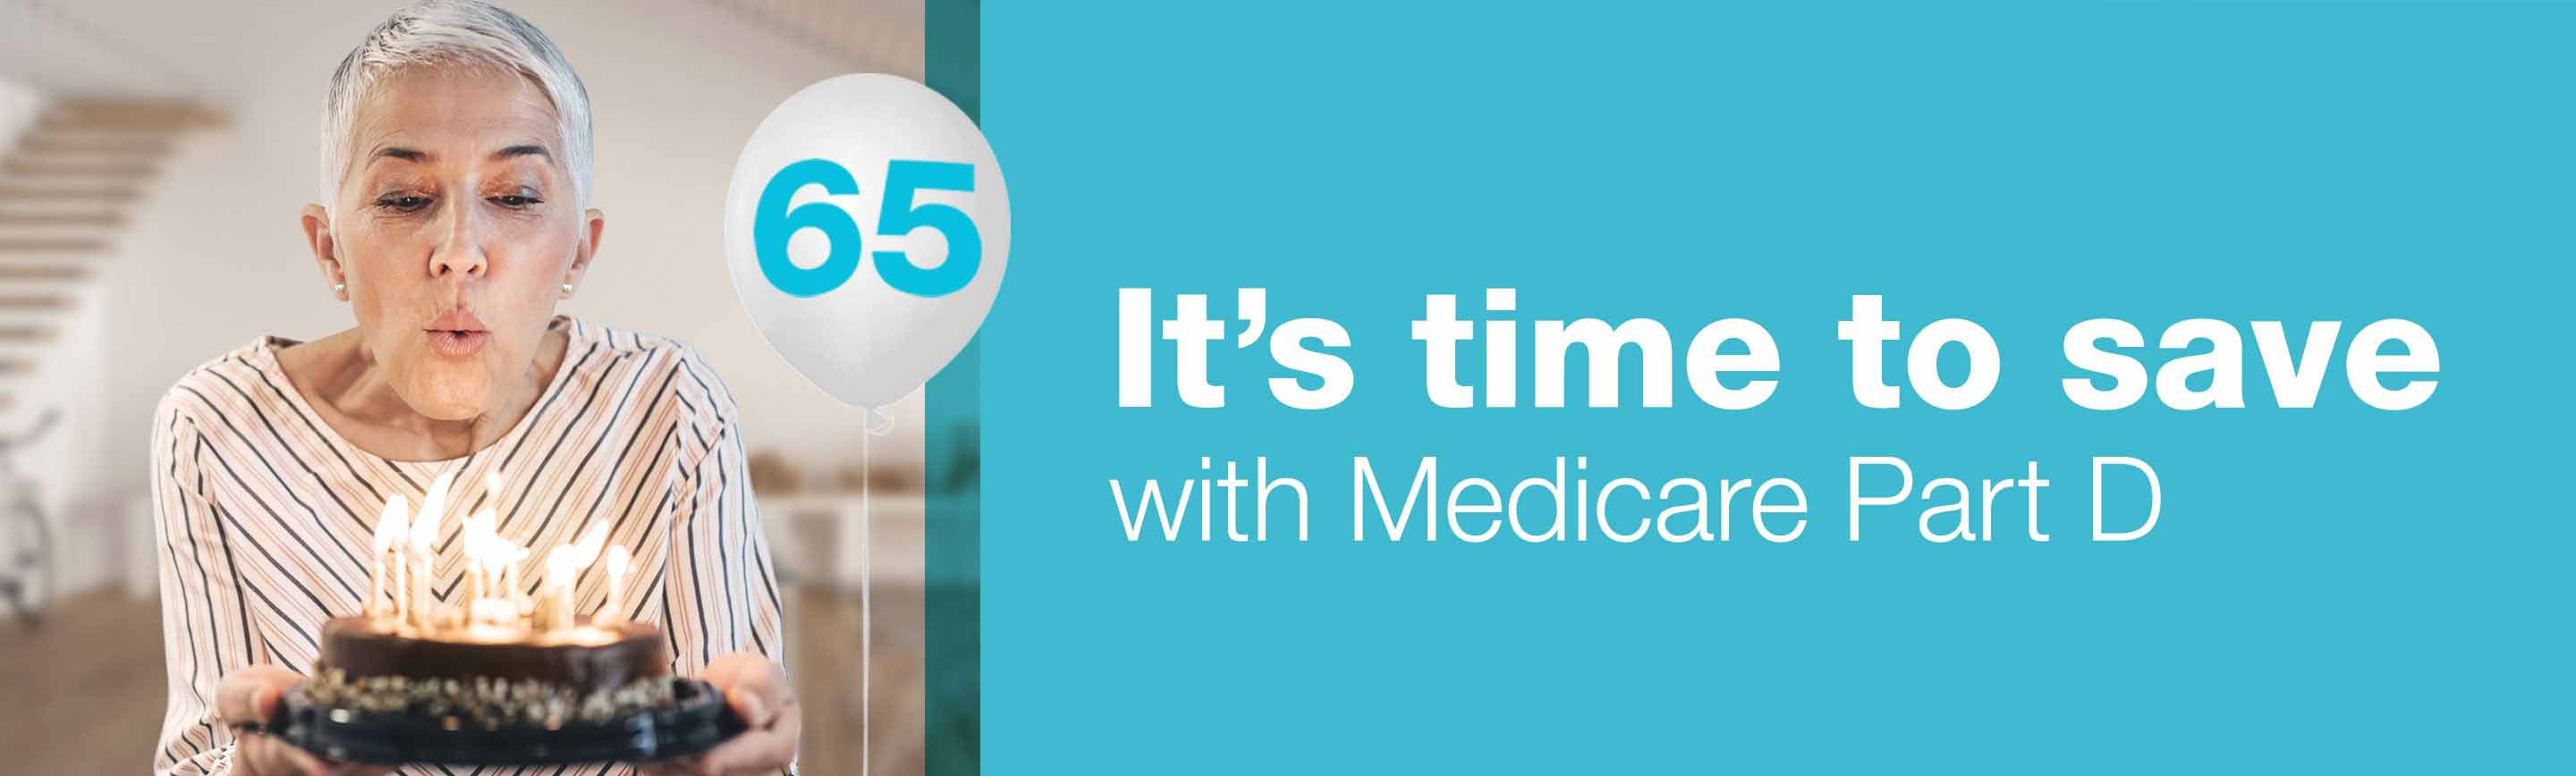 It's time to save with Medicare Part D.